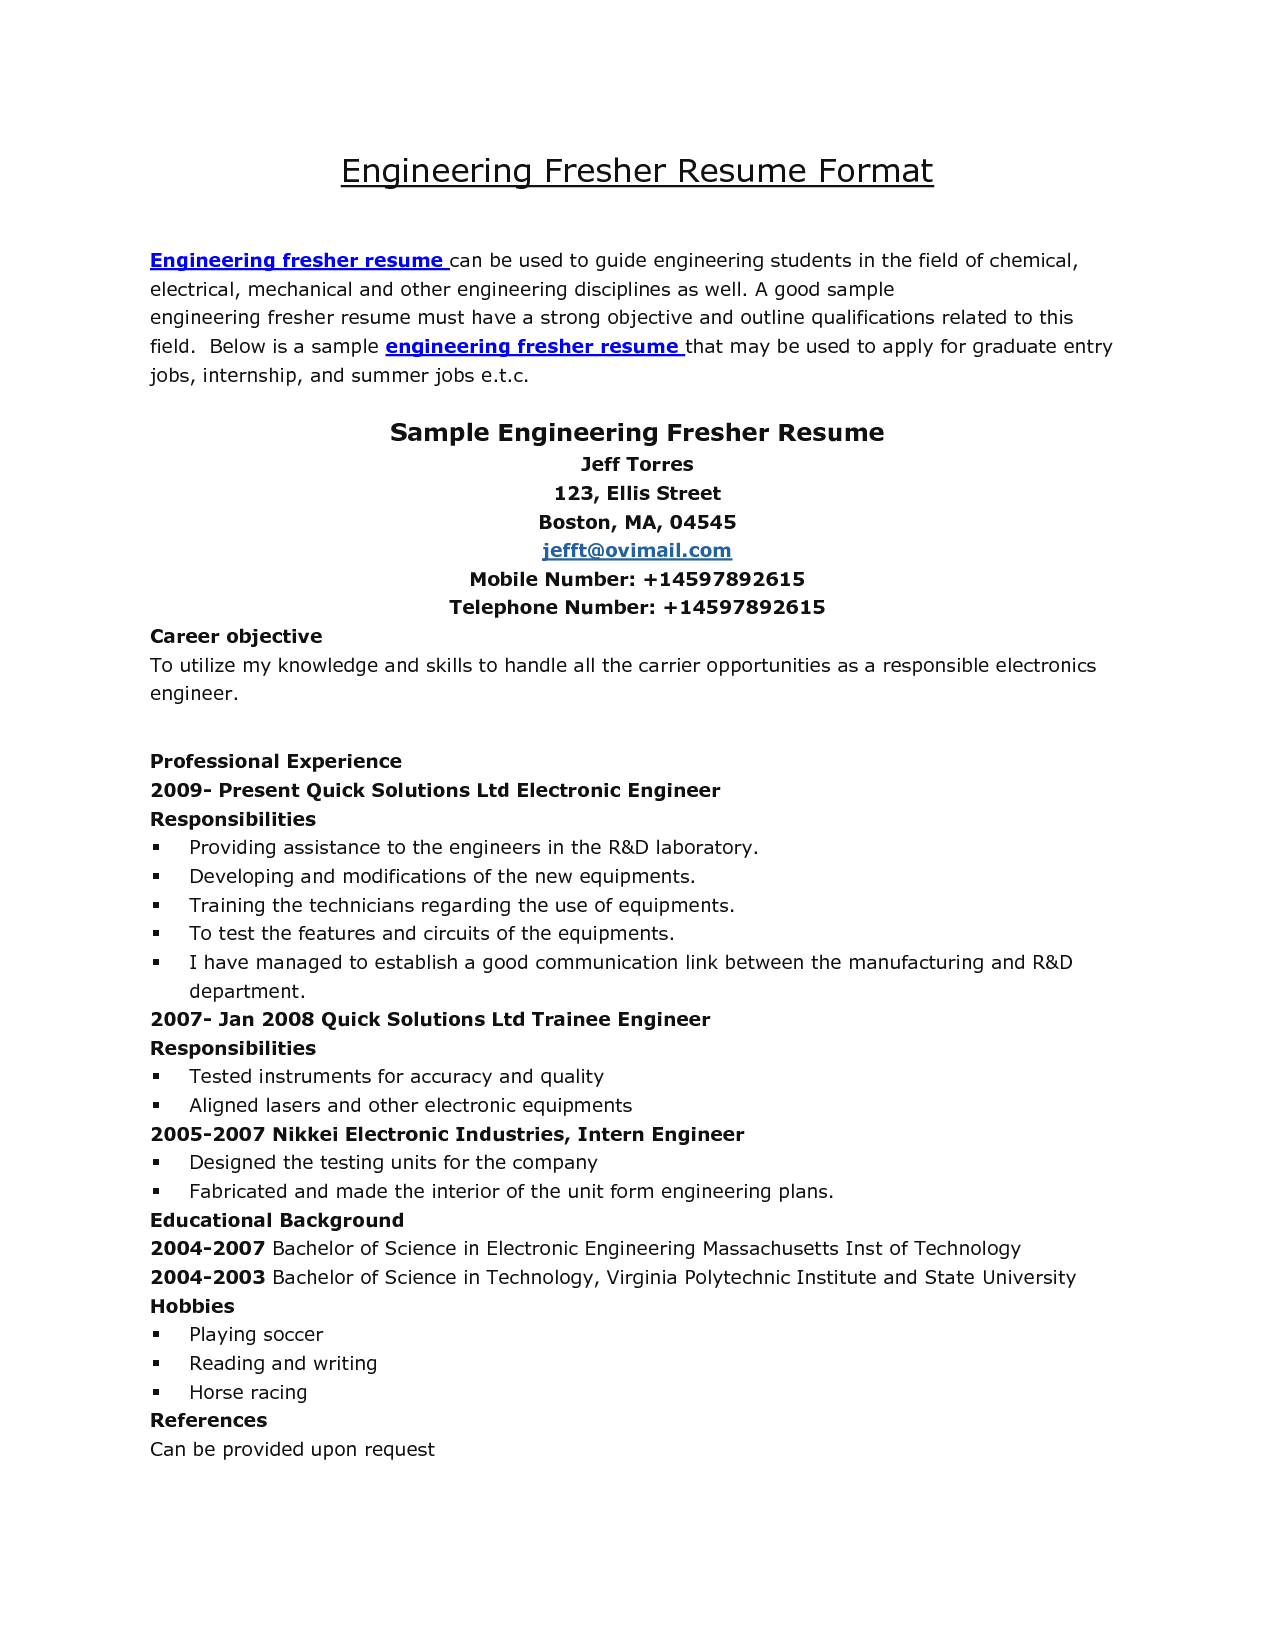 Resume Sample Resume Format For Engineers resume format for engineering students httpwww jobresume website